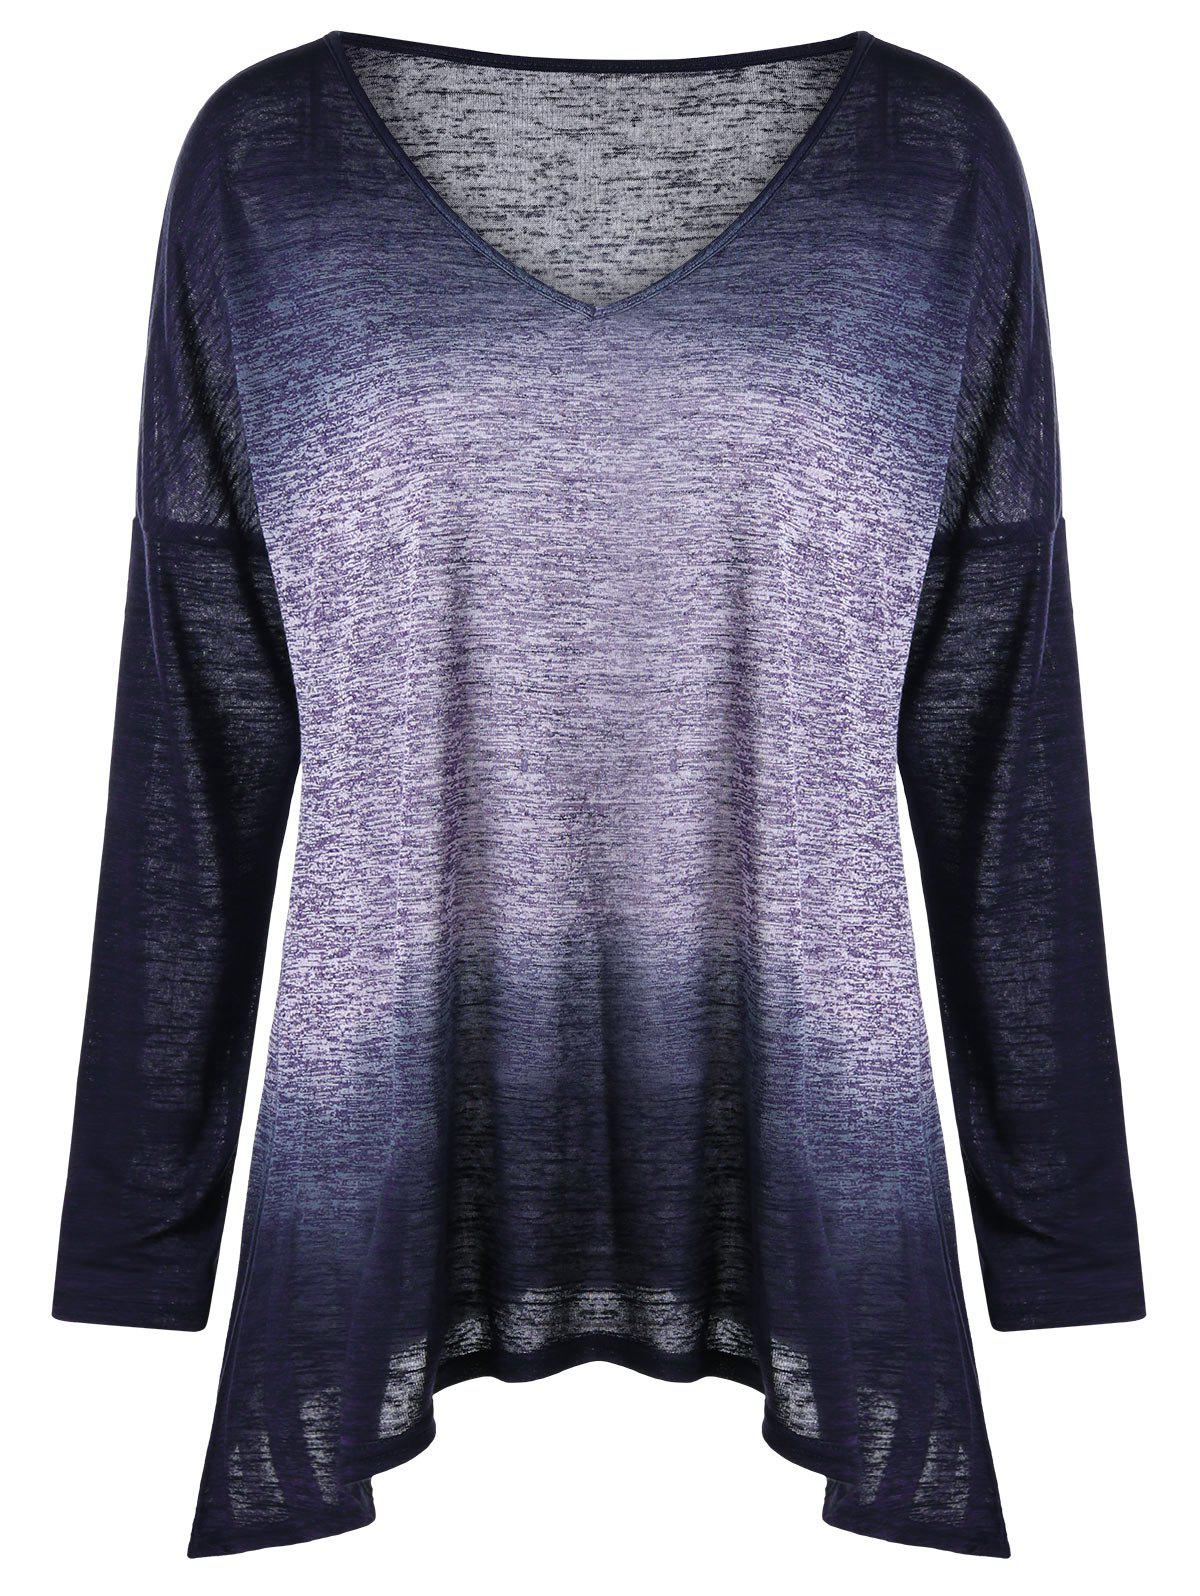 Plus Size Long Sleeve Drop Shoulder Ombre T-shirtWOMEN<br><br>Size: 4XL; Color: COLORMIX; Material: Cotton,Polyester; Shirt Length: Regular; Sleeve Length: Full; Collar: V-Neck; Style: Casual; Season: Fall,Spring; Pattern Type: Ombre; Weight: 0.2500kg; Package Contents: 1 x T-shirt;